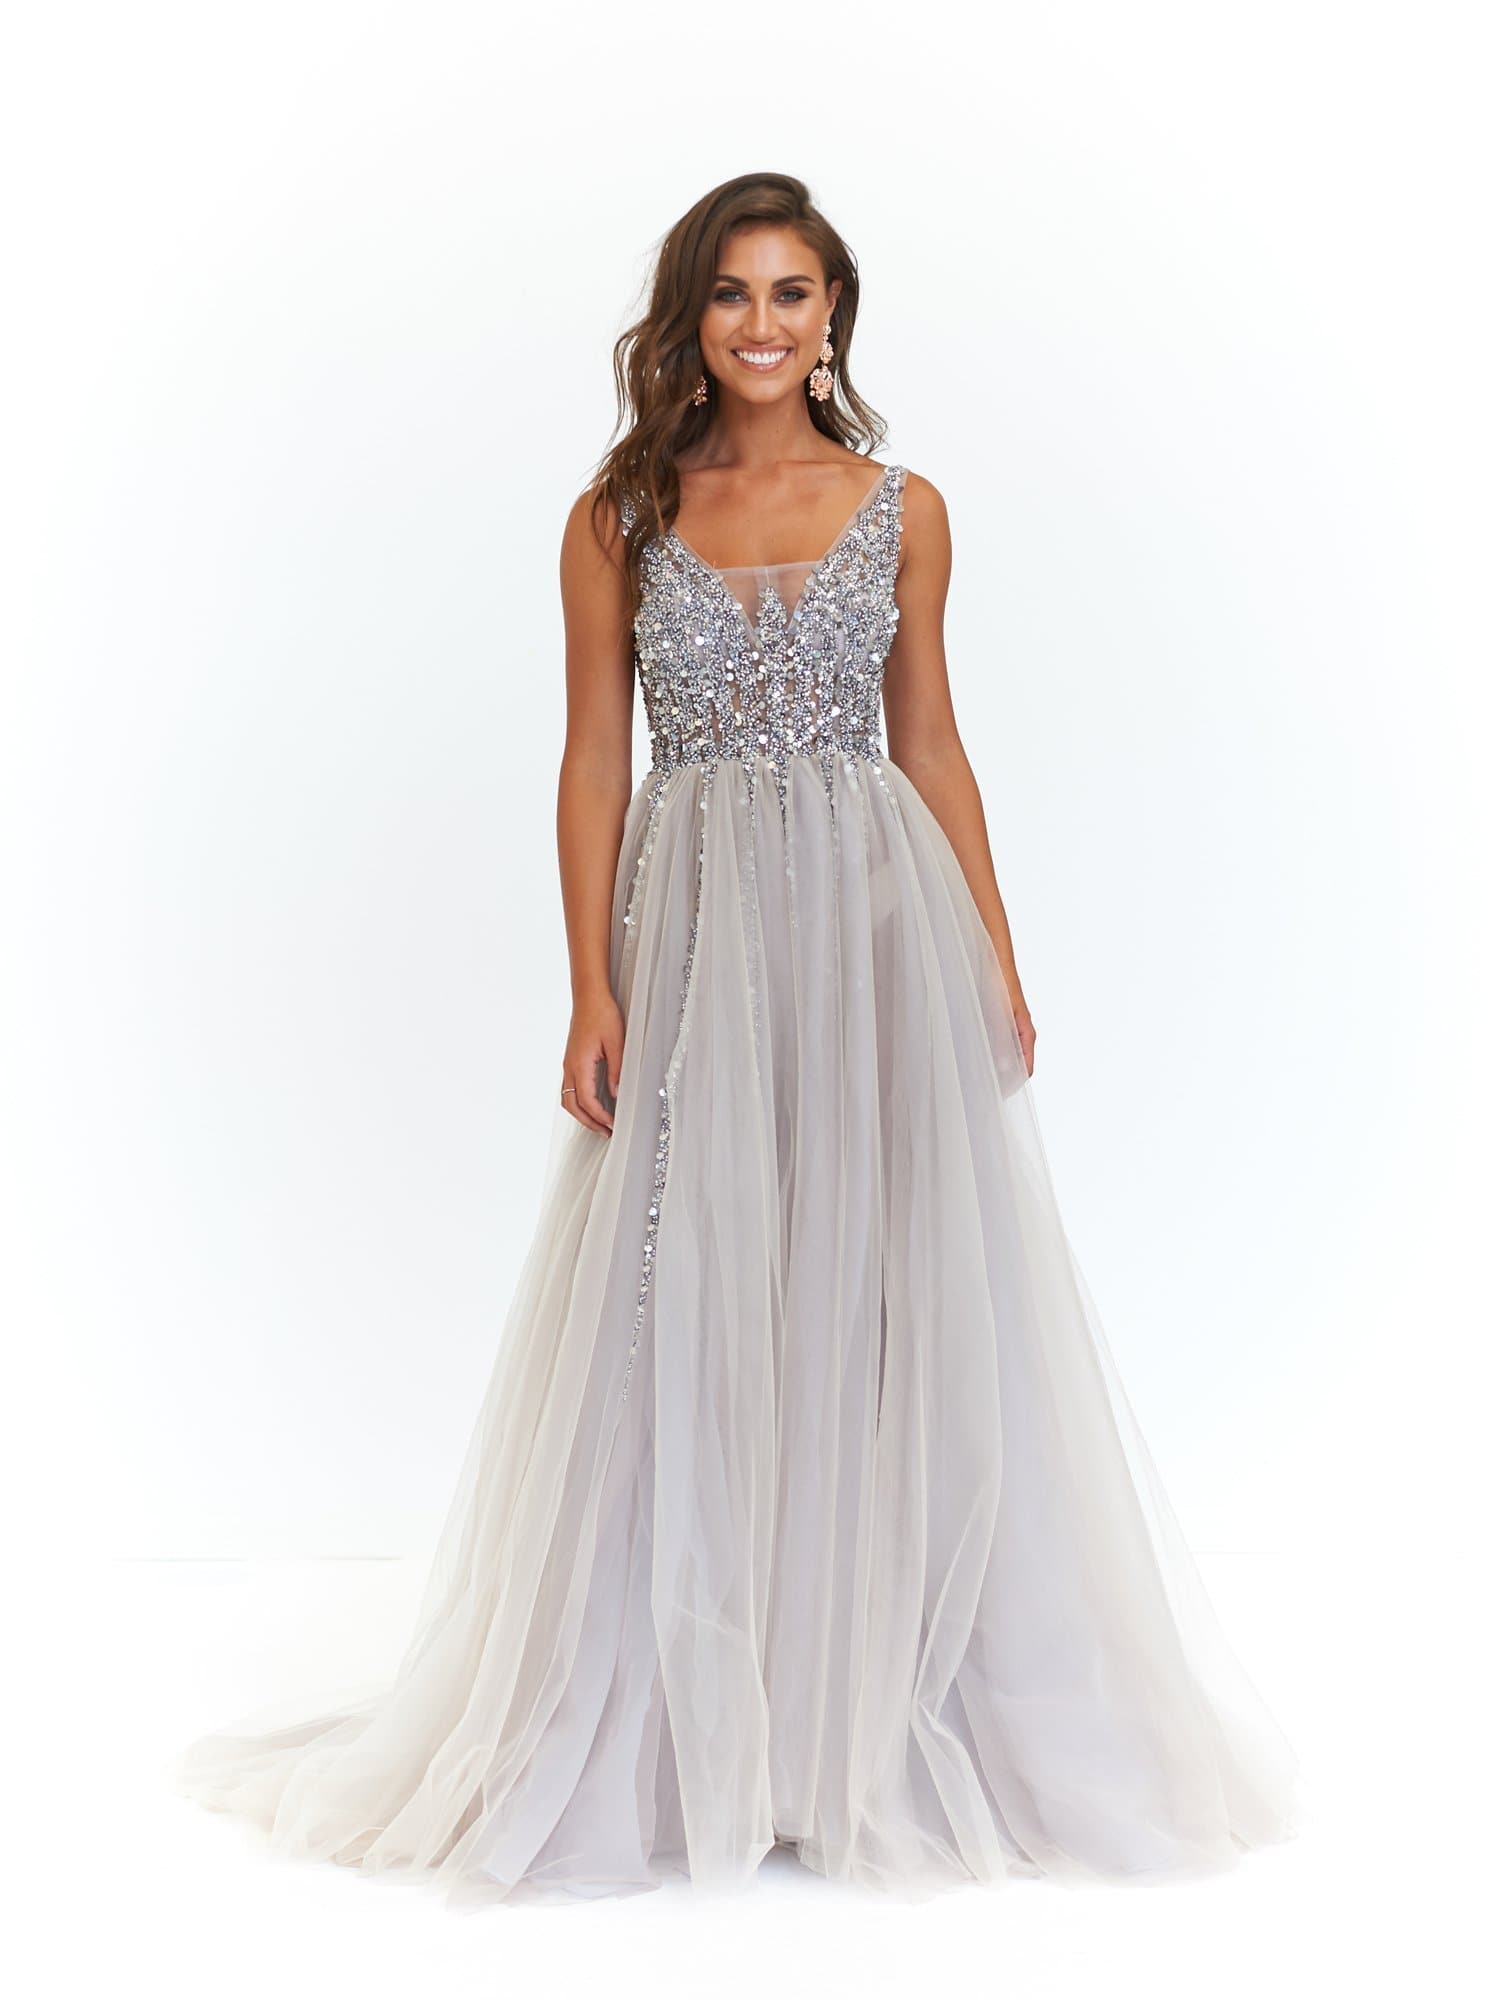 A&N Princessa - Silver Tulle Gown with Low Back and Beaded Bodice